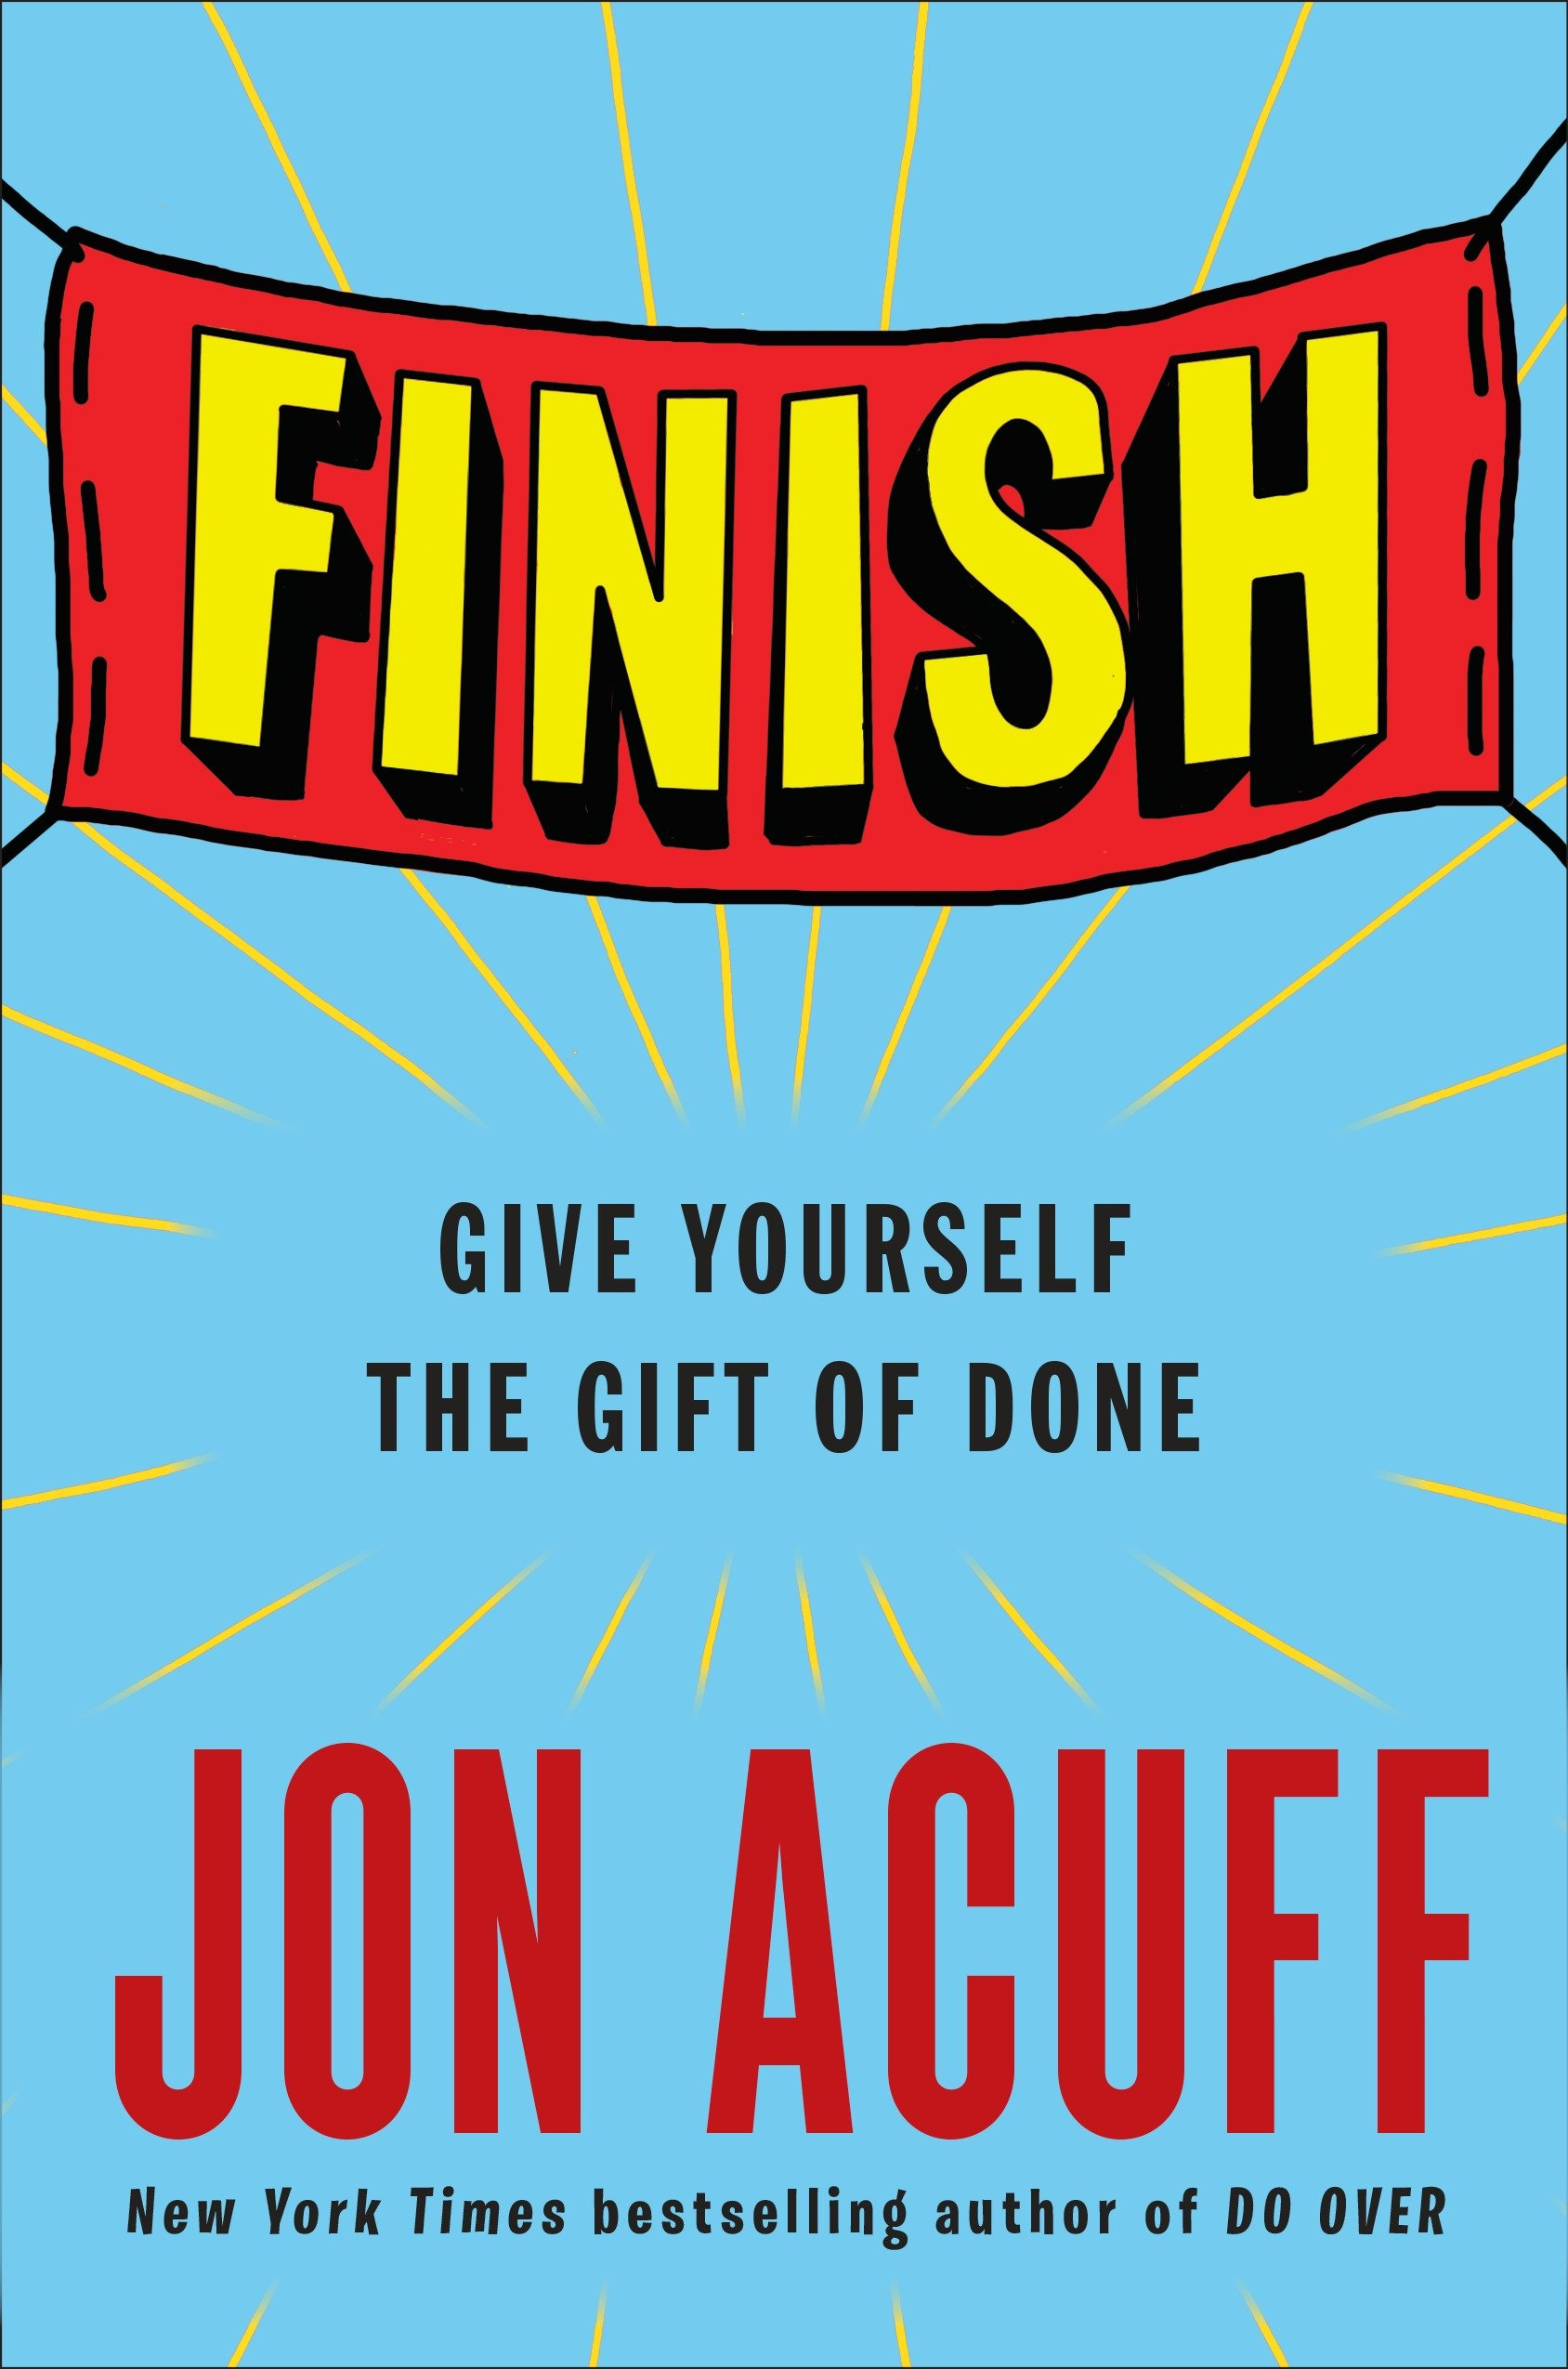 Image result for Finish by Jon Acuff